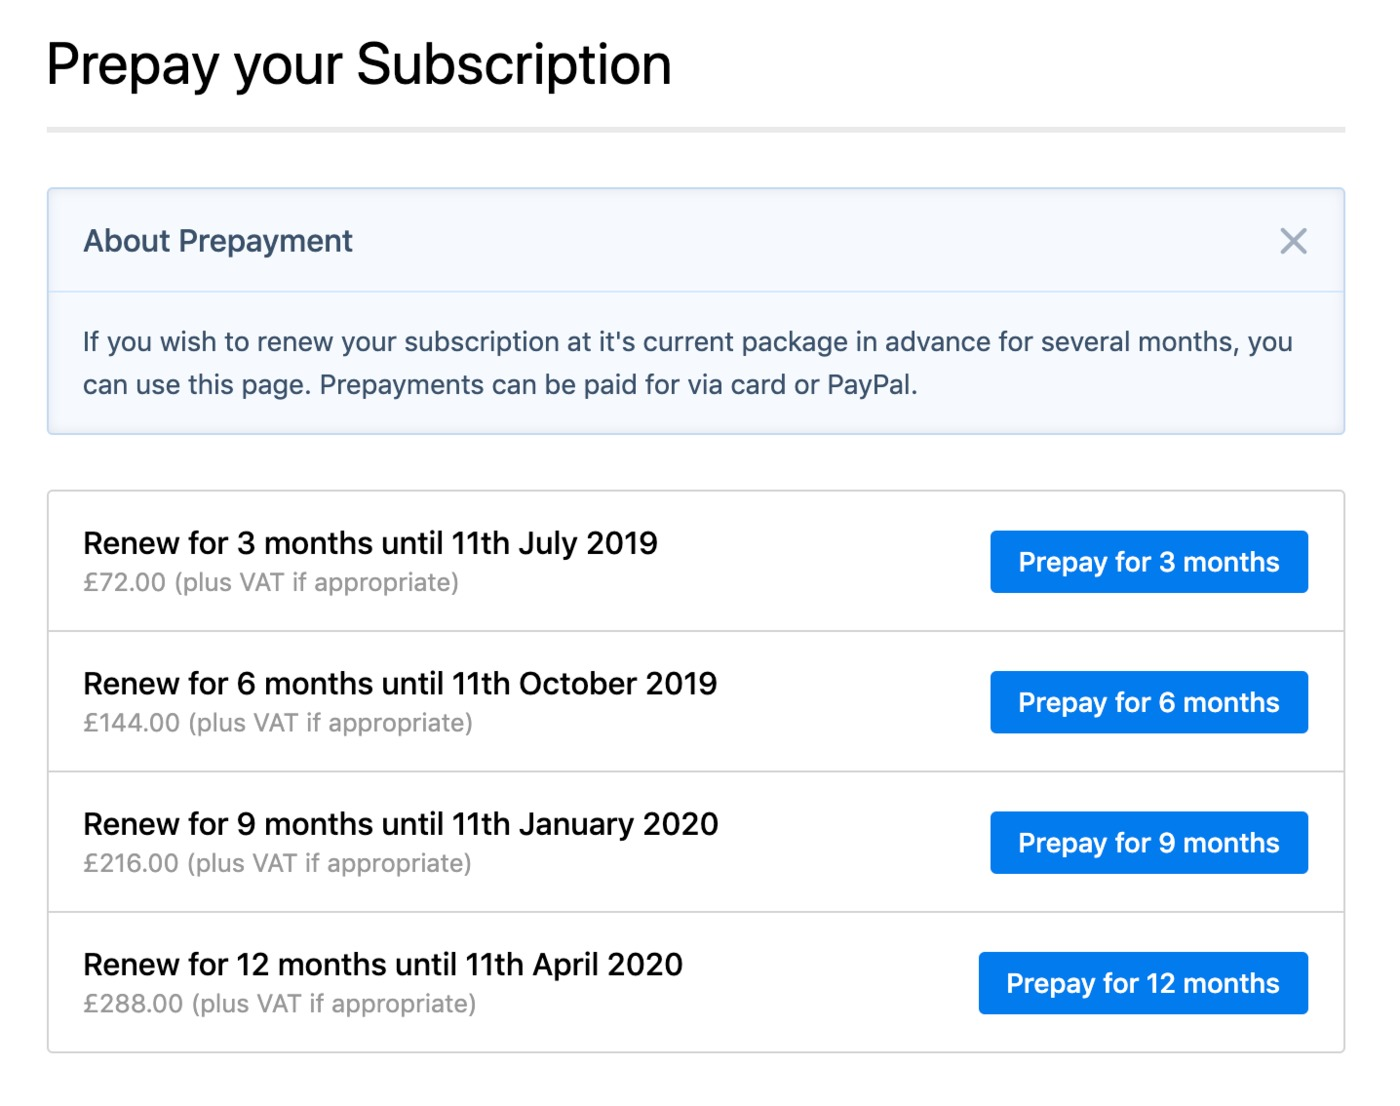 Prepay subscription